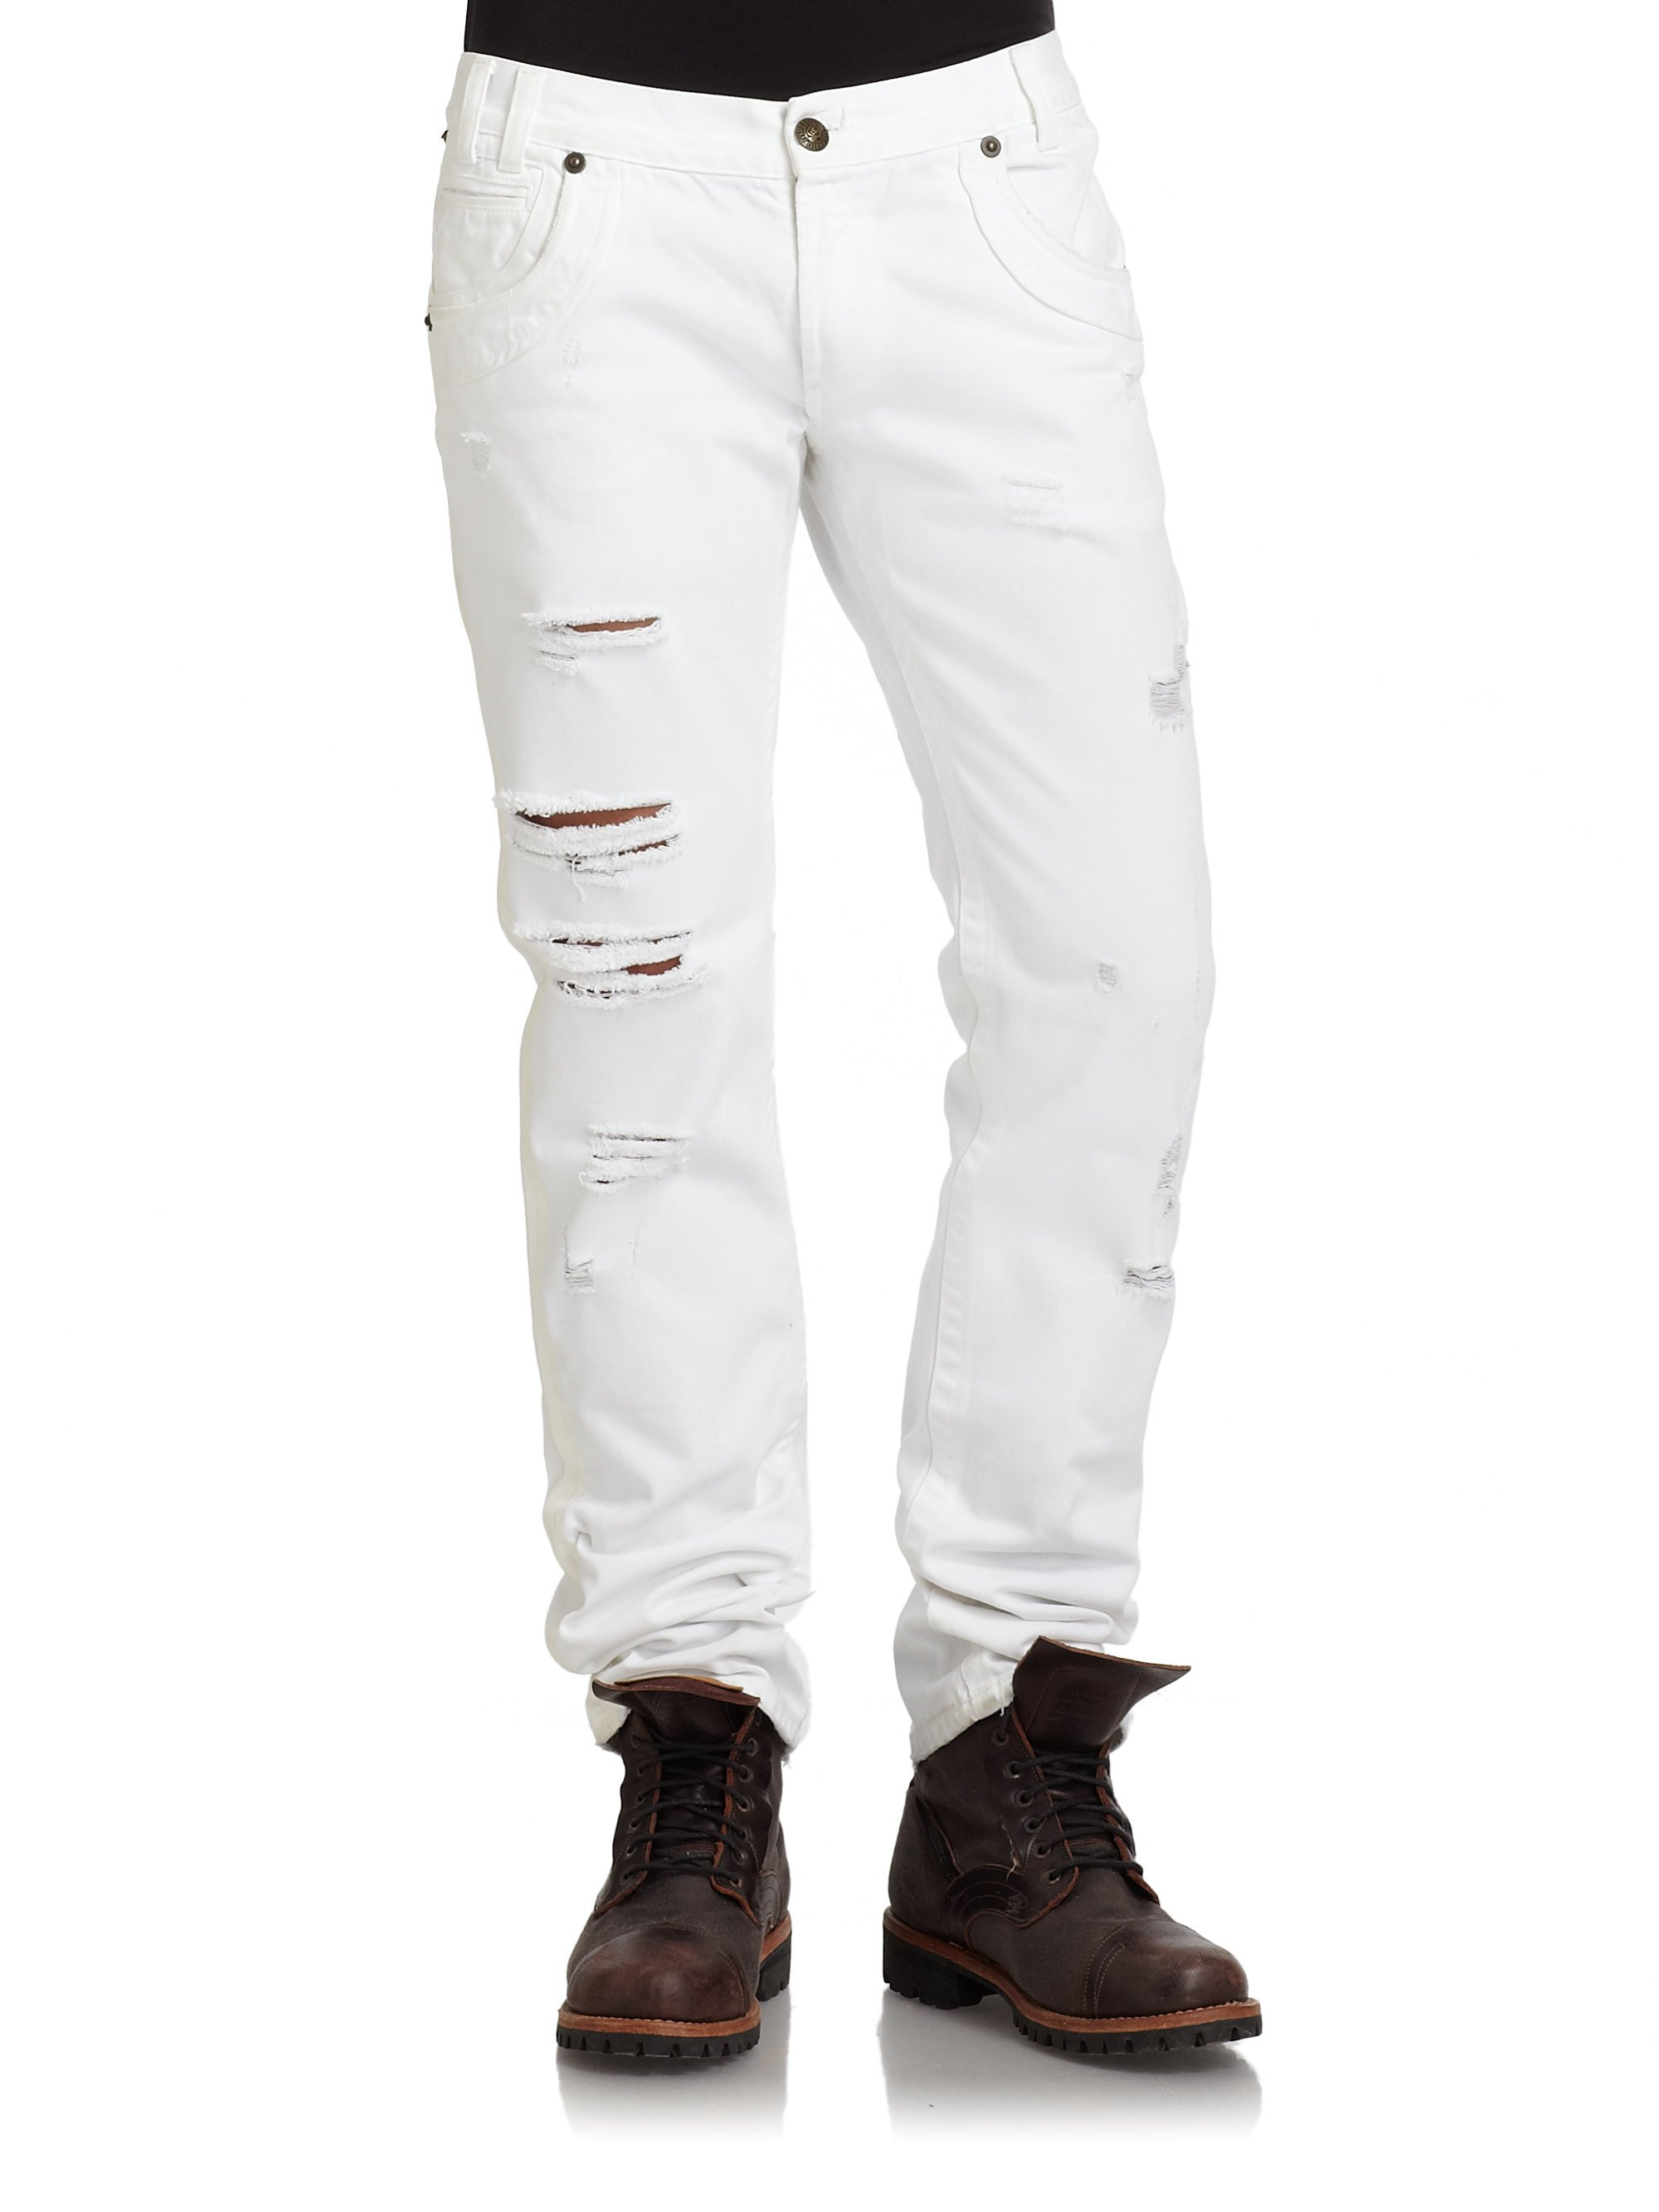 Find great deals on eBay for mens white slim fit jeans. Shop with confidence.